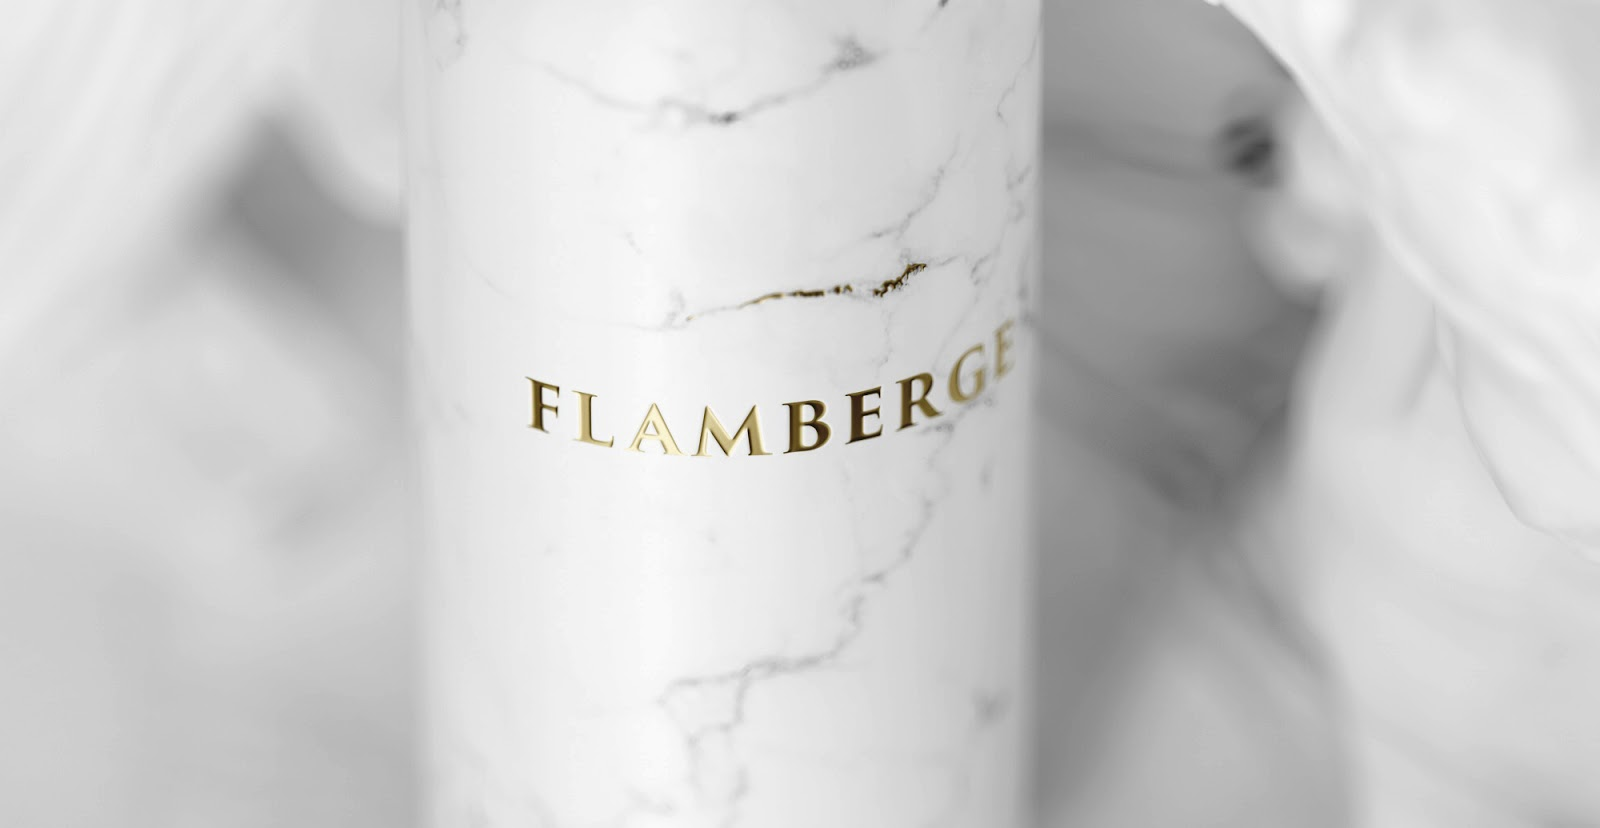 Thiết kế bao bì Flamberge Limited-Edition Cognac